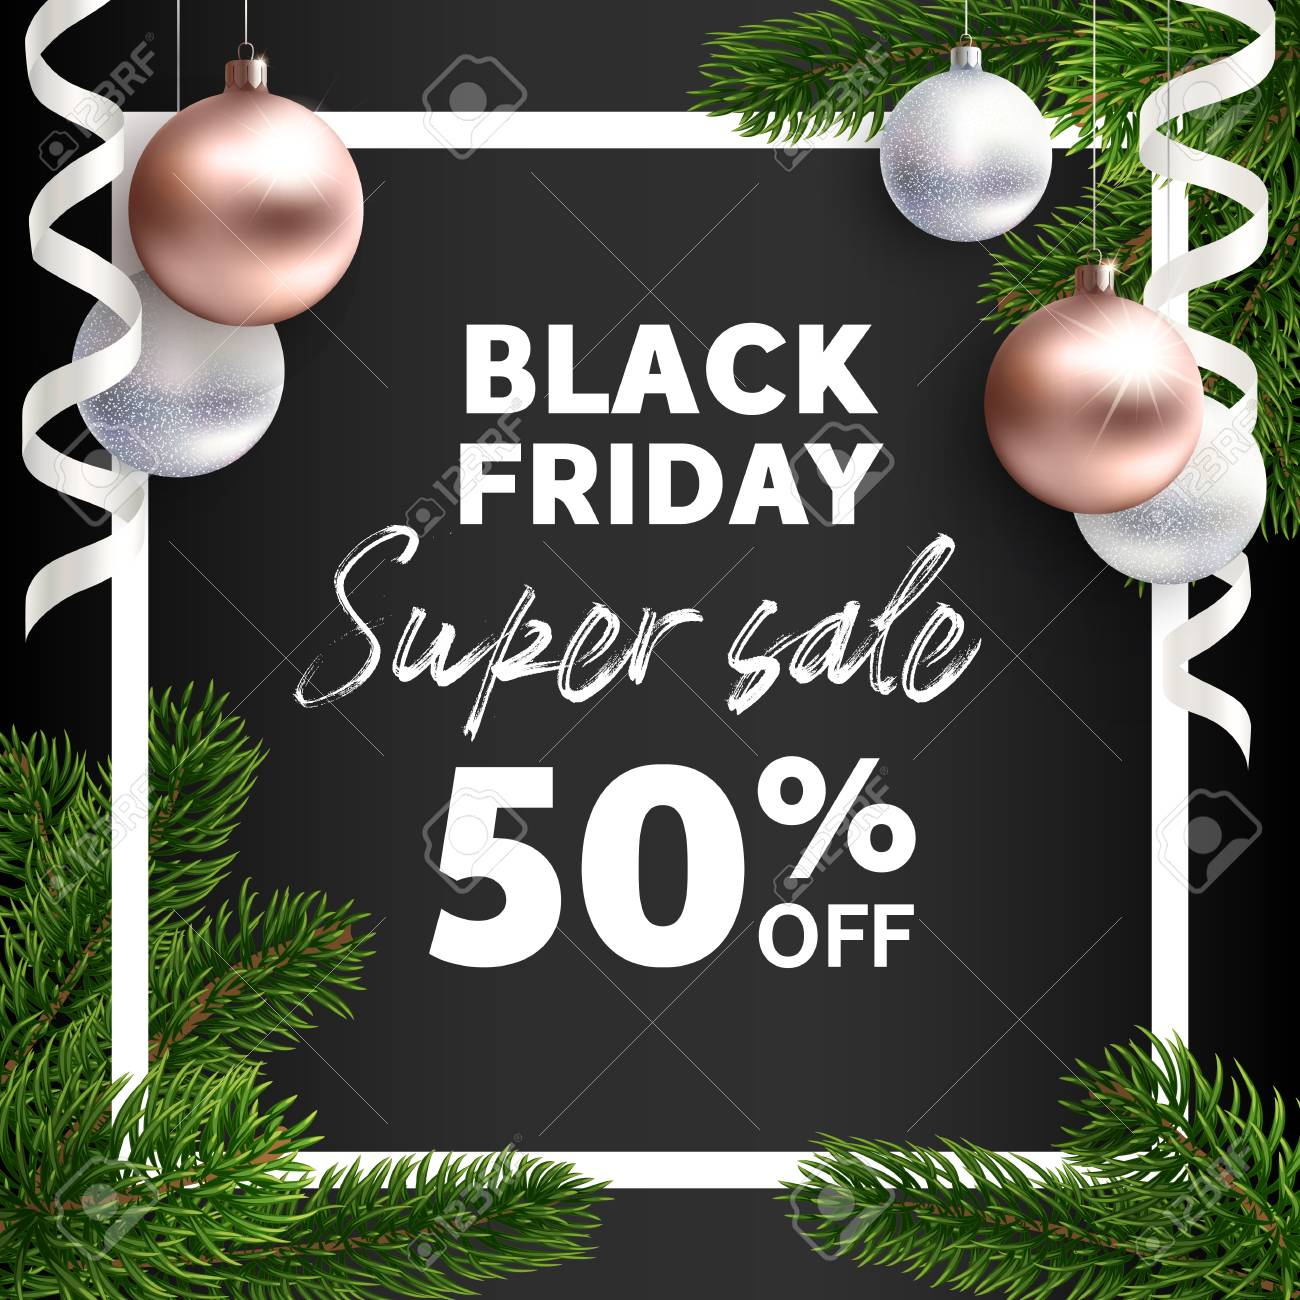 Black Friday Sale Vector Flyer Template Realistic Illustration Royalty Free Cliparts Vectors And Stock Illustration Image 111497426